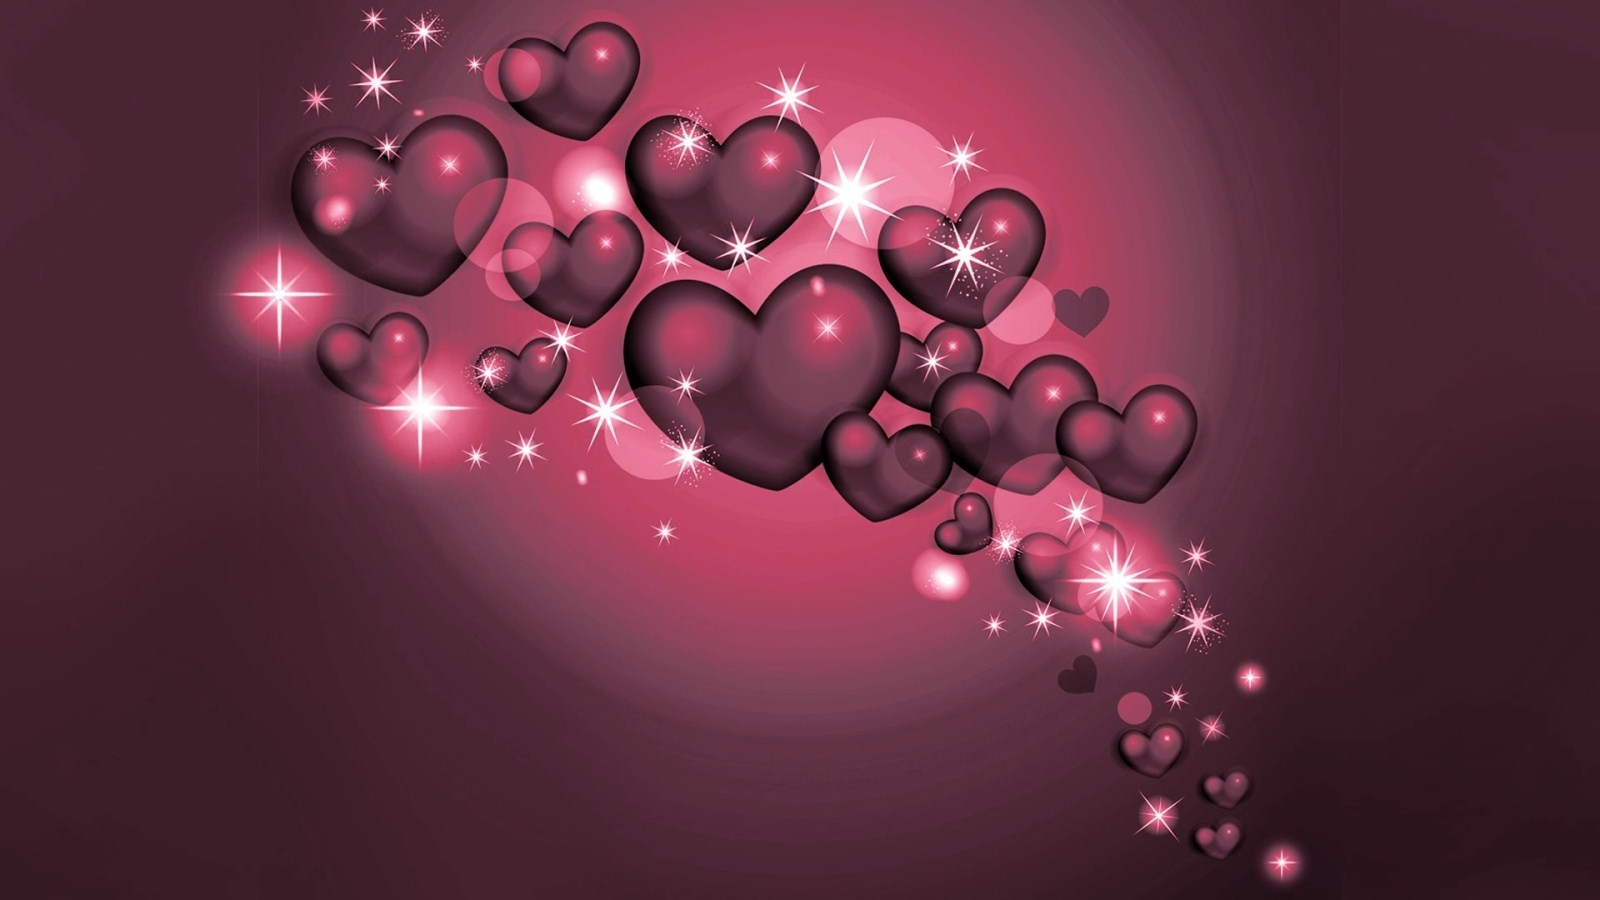 love heart 3d hd wallpapers 1080p download 1600x900